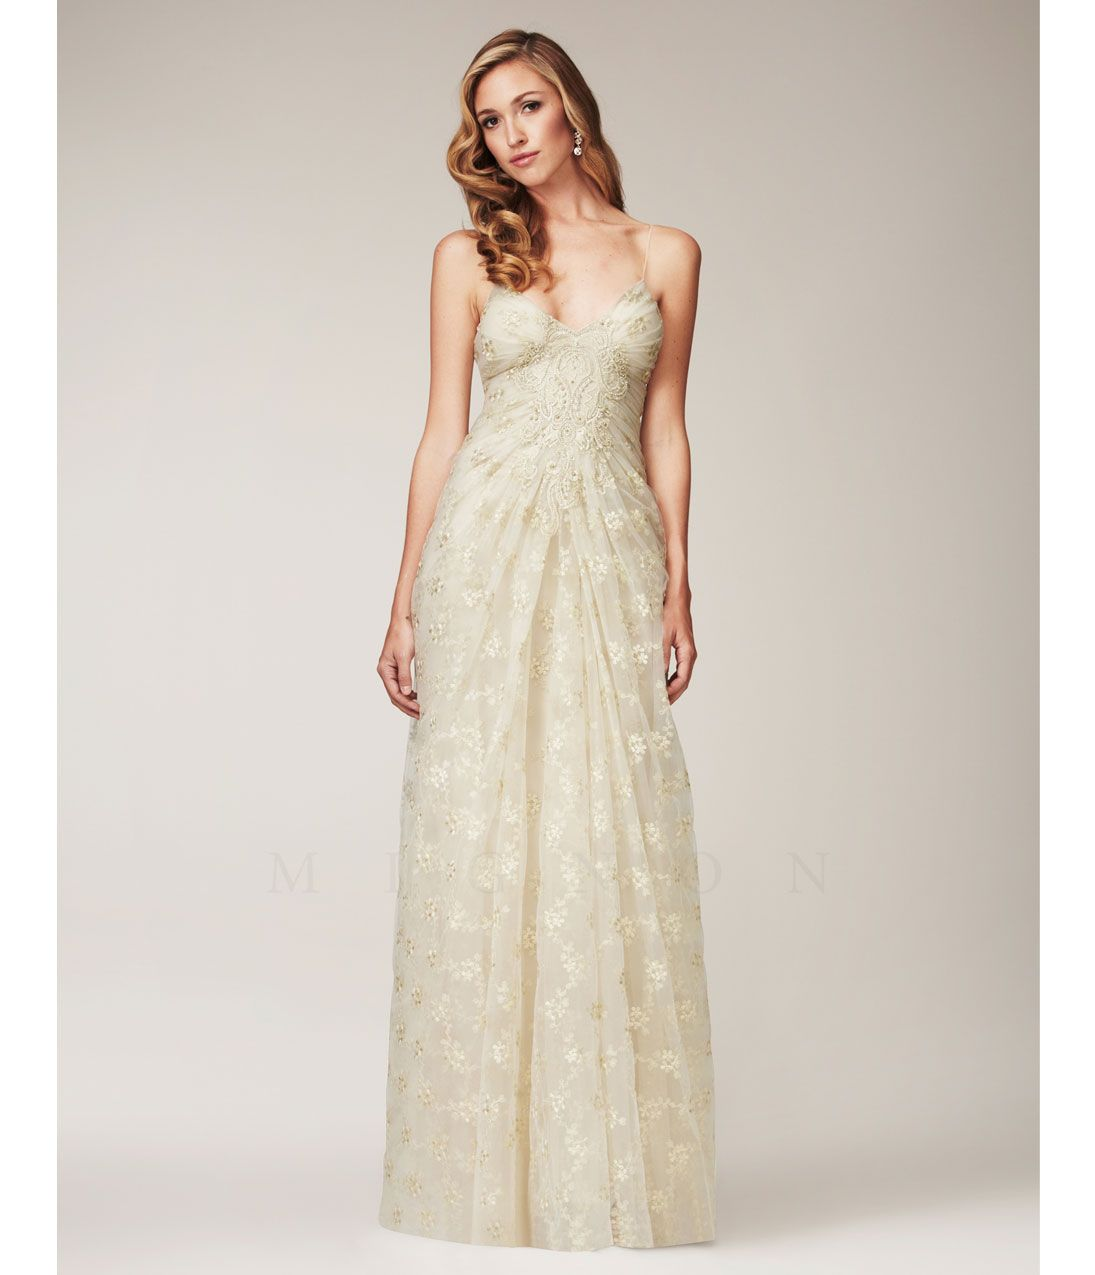 Collection Ivory Prom Dresses Pictures - Reikian